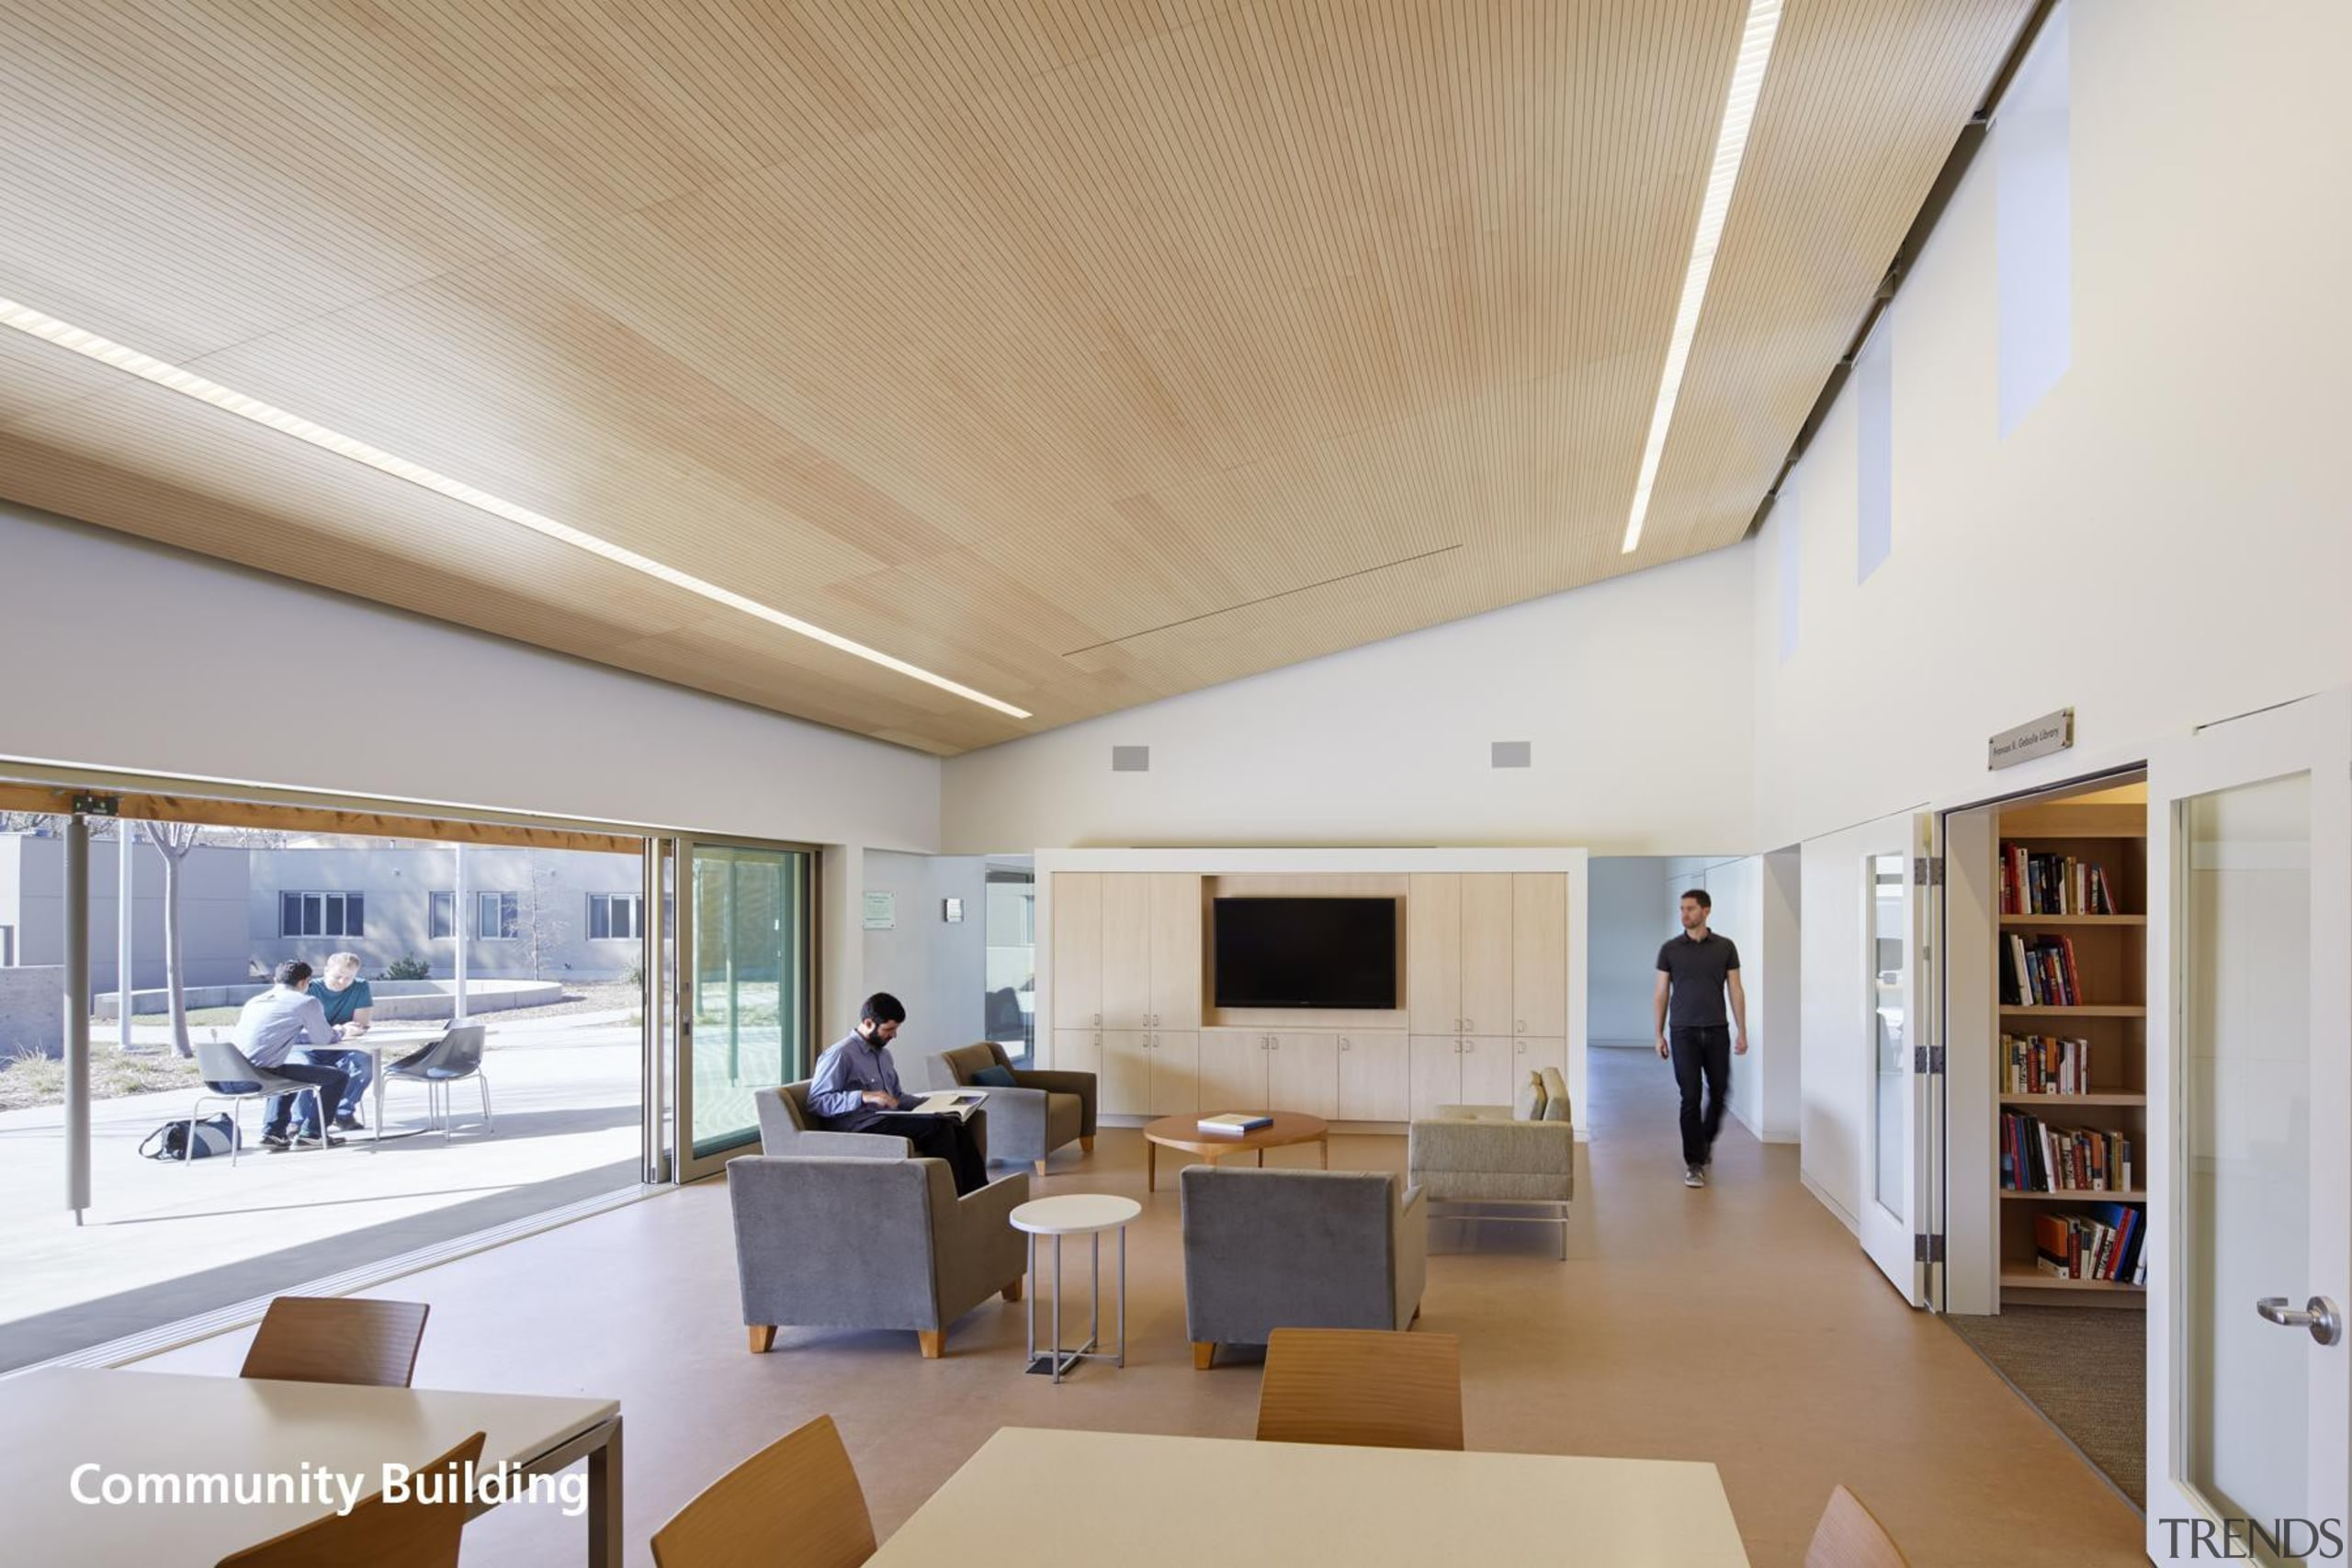 Sweetwater Spectrum is a new national model for architecture, ceiling, daylighting, house, interior design, real estate, gray